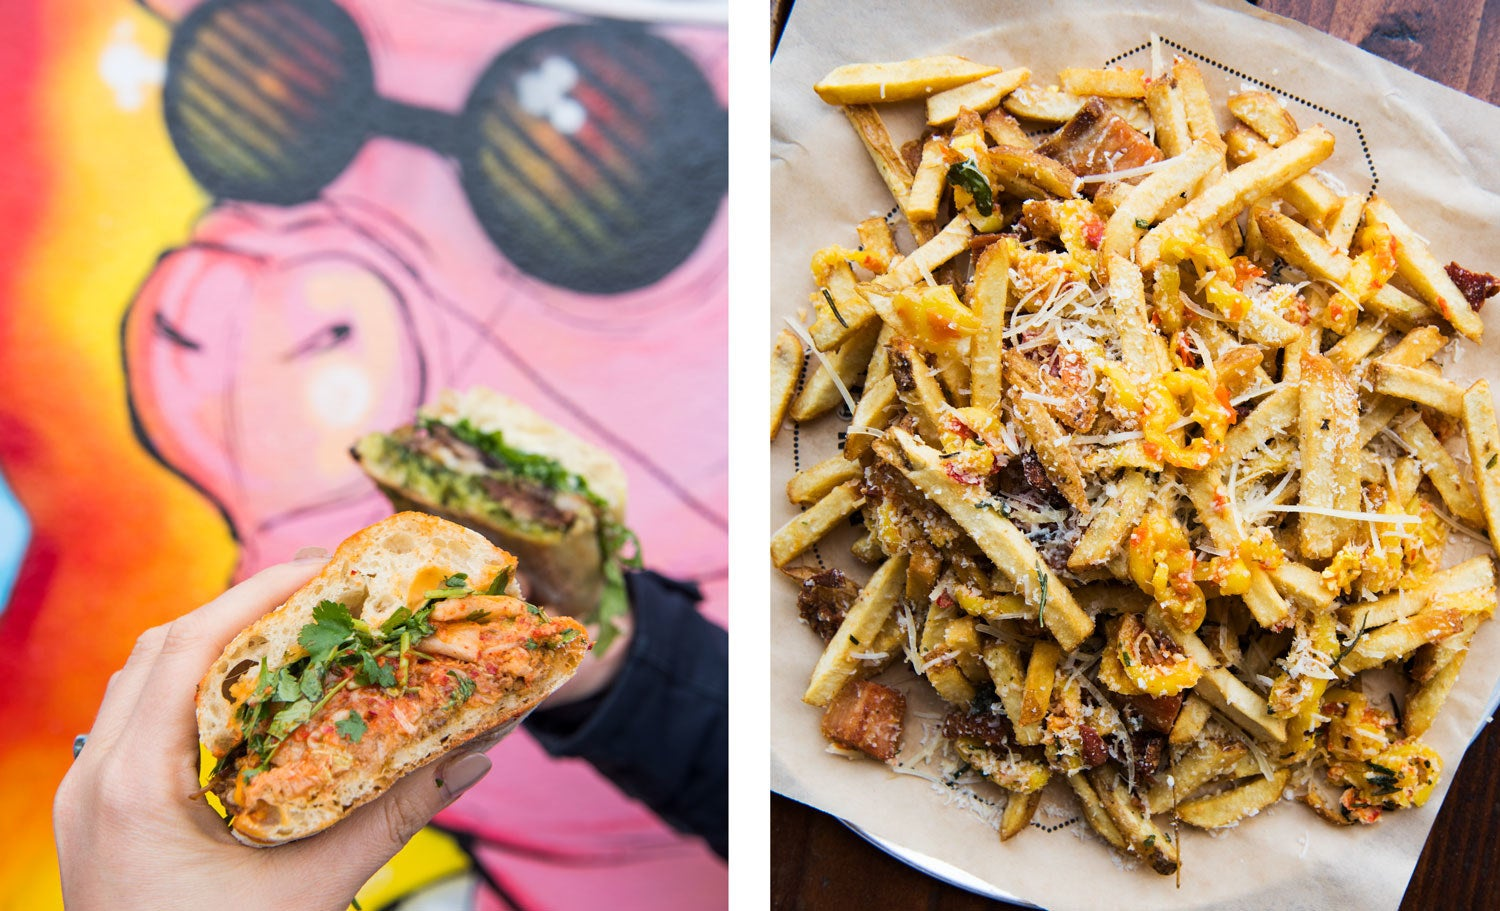 L, top to bottom: Porchetta sandwich with gremolata, caper mayo, arugula, and Parmesan; Korean pork shoulder sandwich with house kimchi, chili mayo, cilantro, and lime. R: Dirty Fries with pork scraps, marinated peppers, fried herbs, and Parmesan.